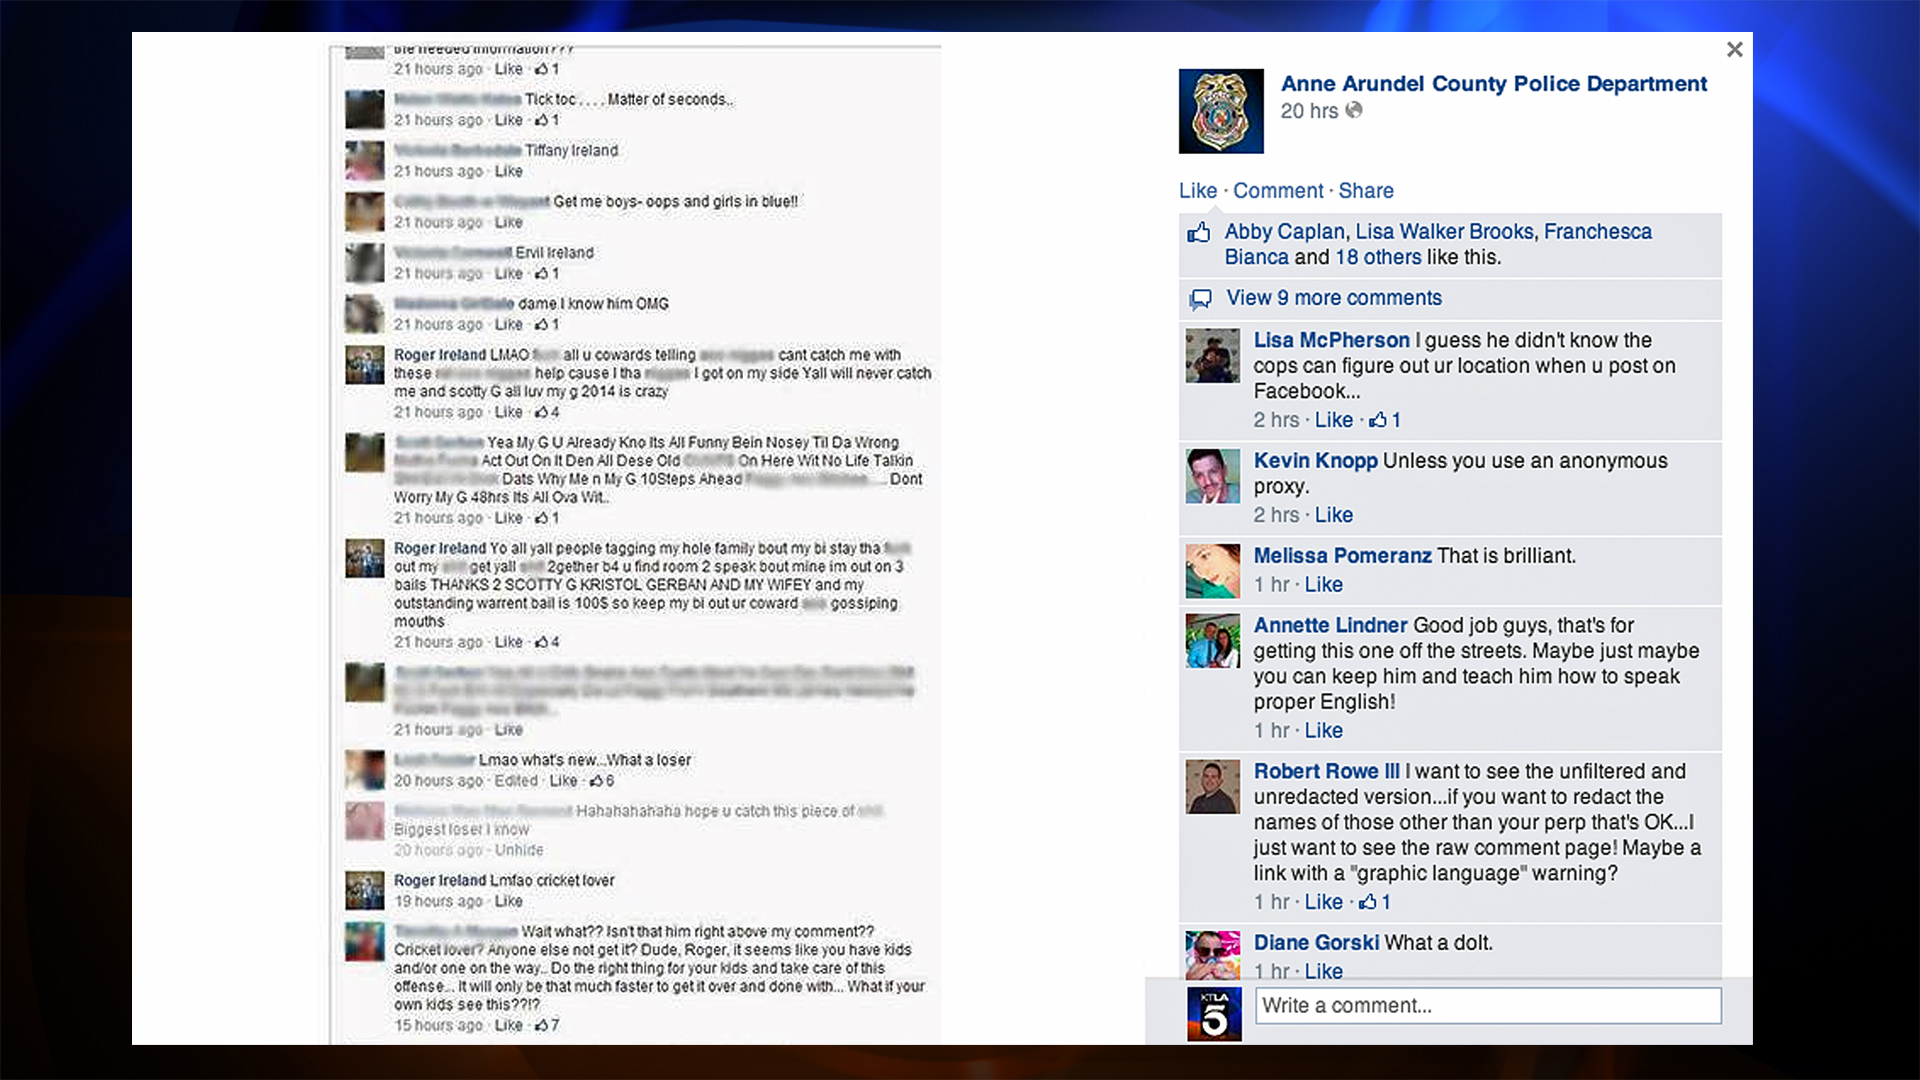 An image of the thread Roger Ireland allegedly participated in was posted on the Anne Arundel County Police Department Facebook page.